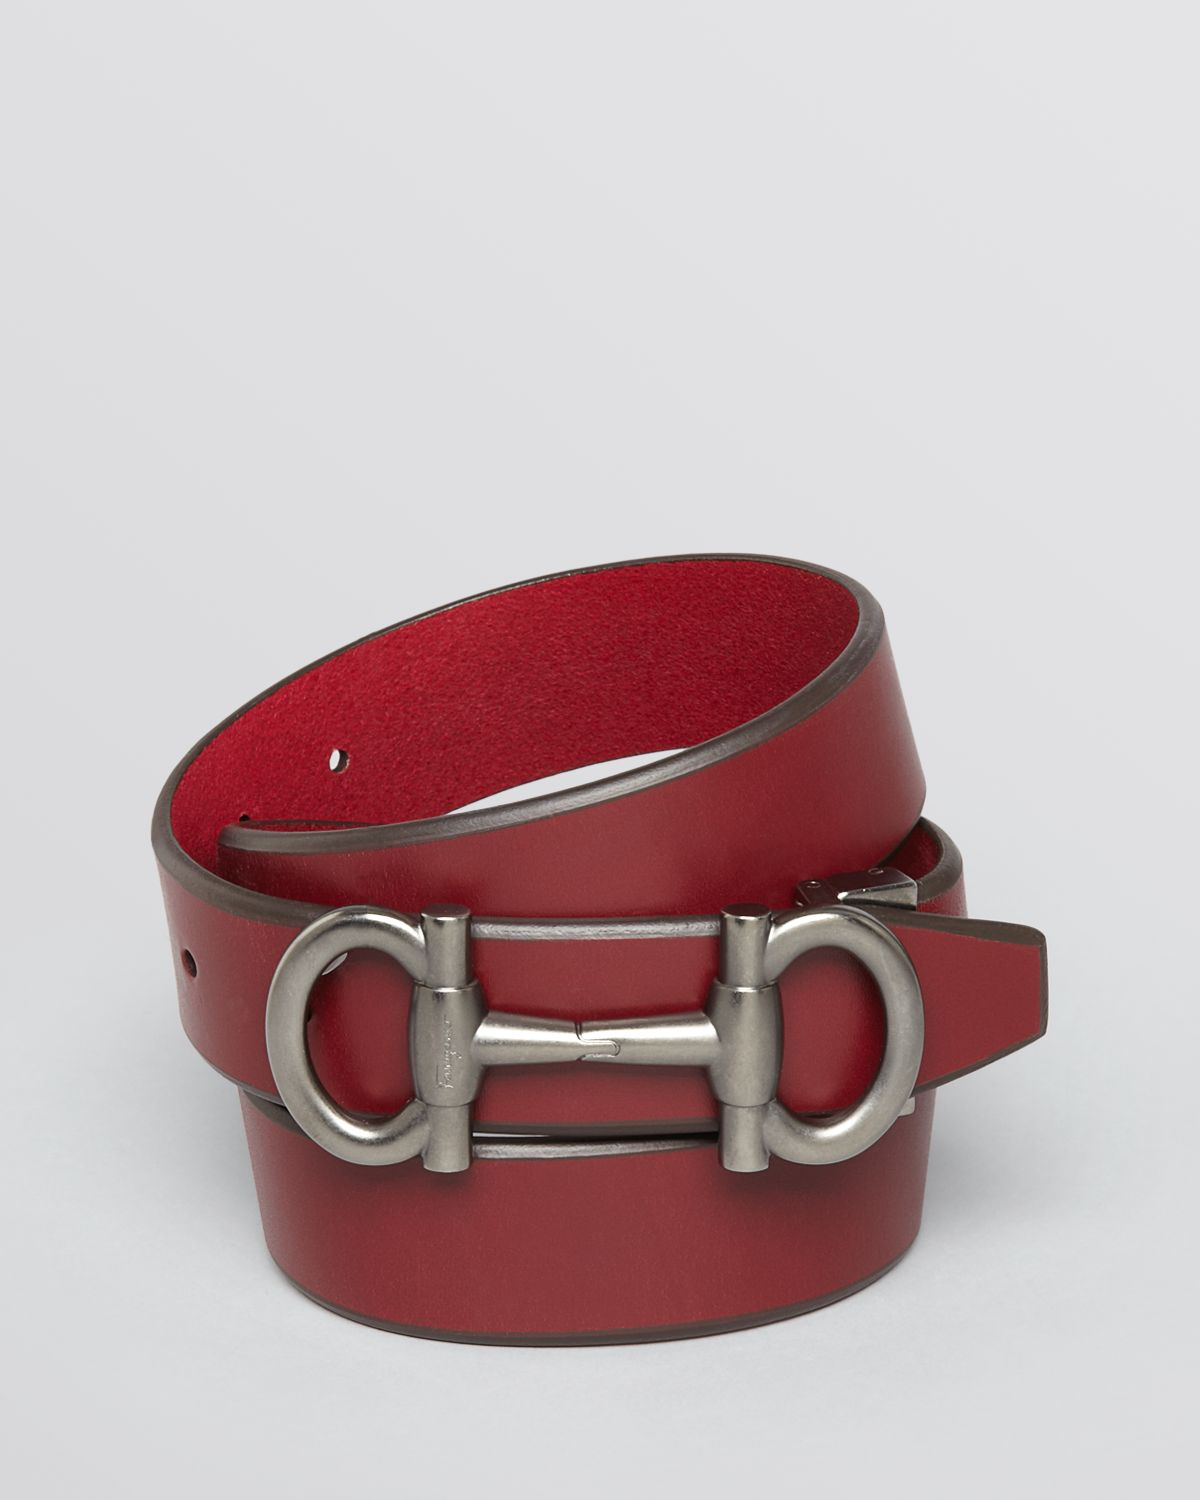 a55ccb92ecdaf ... spain lyst ferragamo buckle belt in red for men 09168 3f3e0